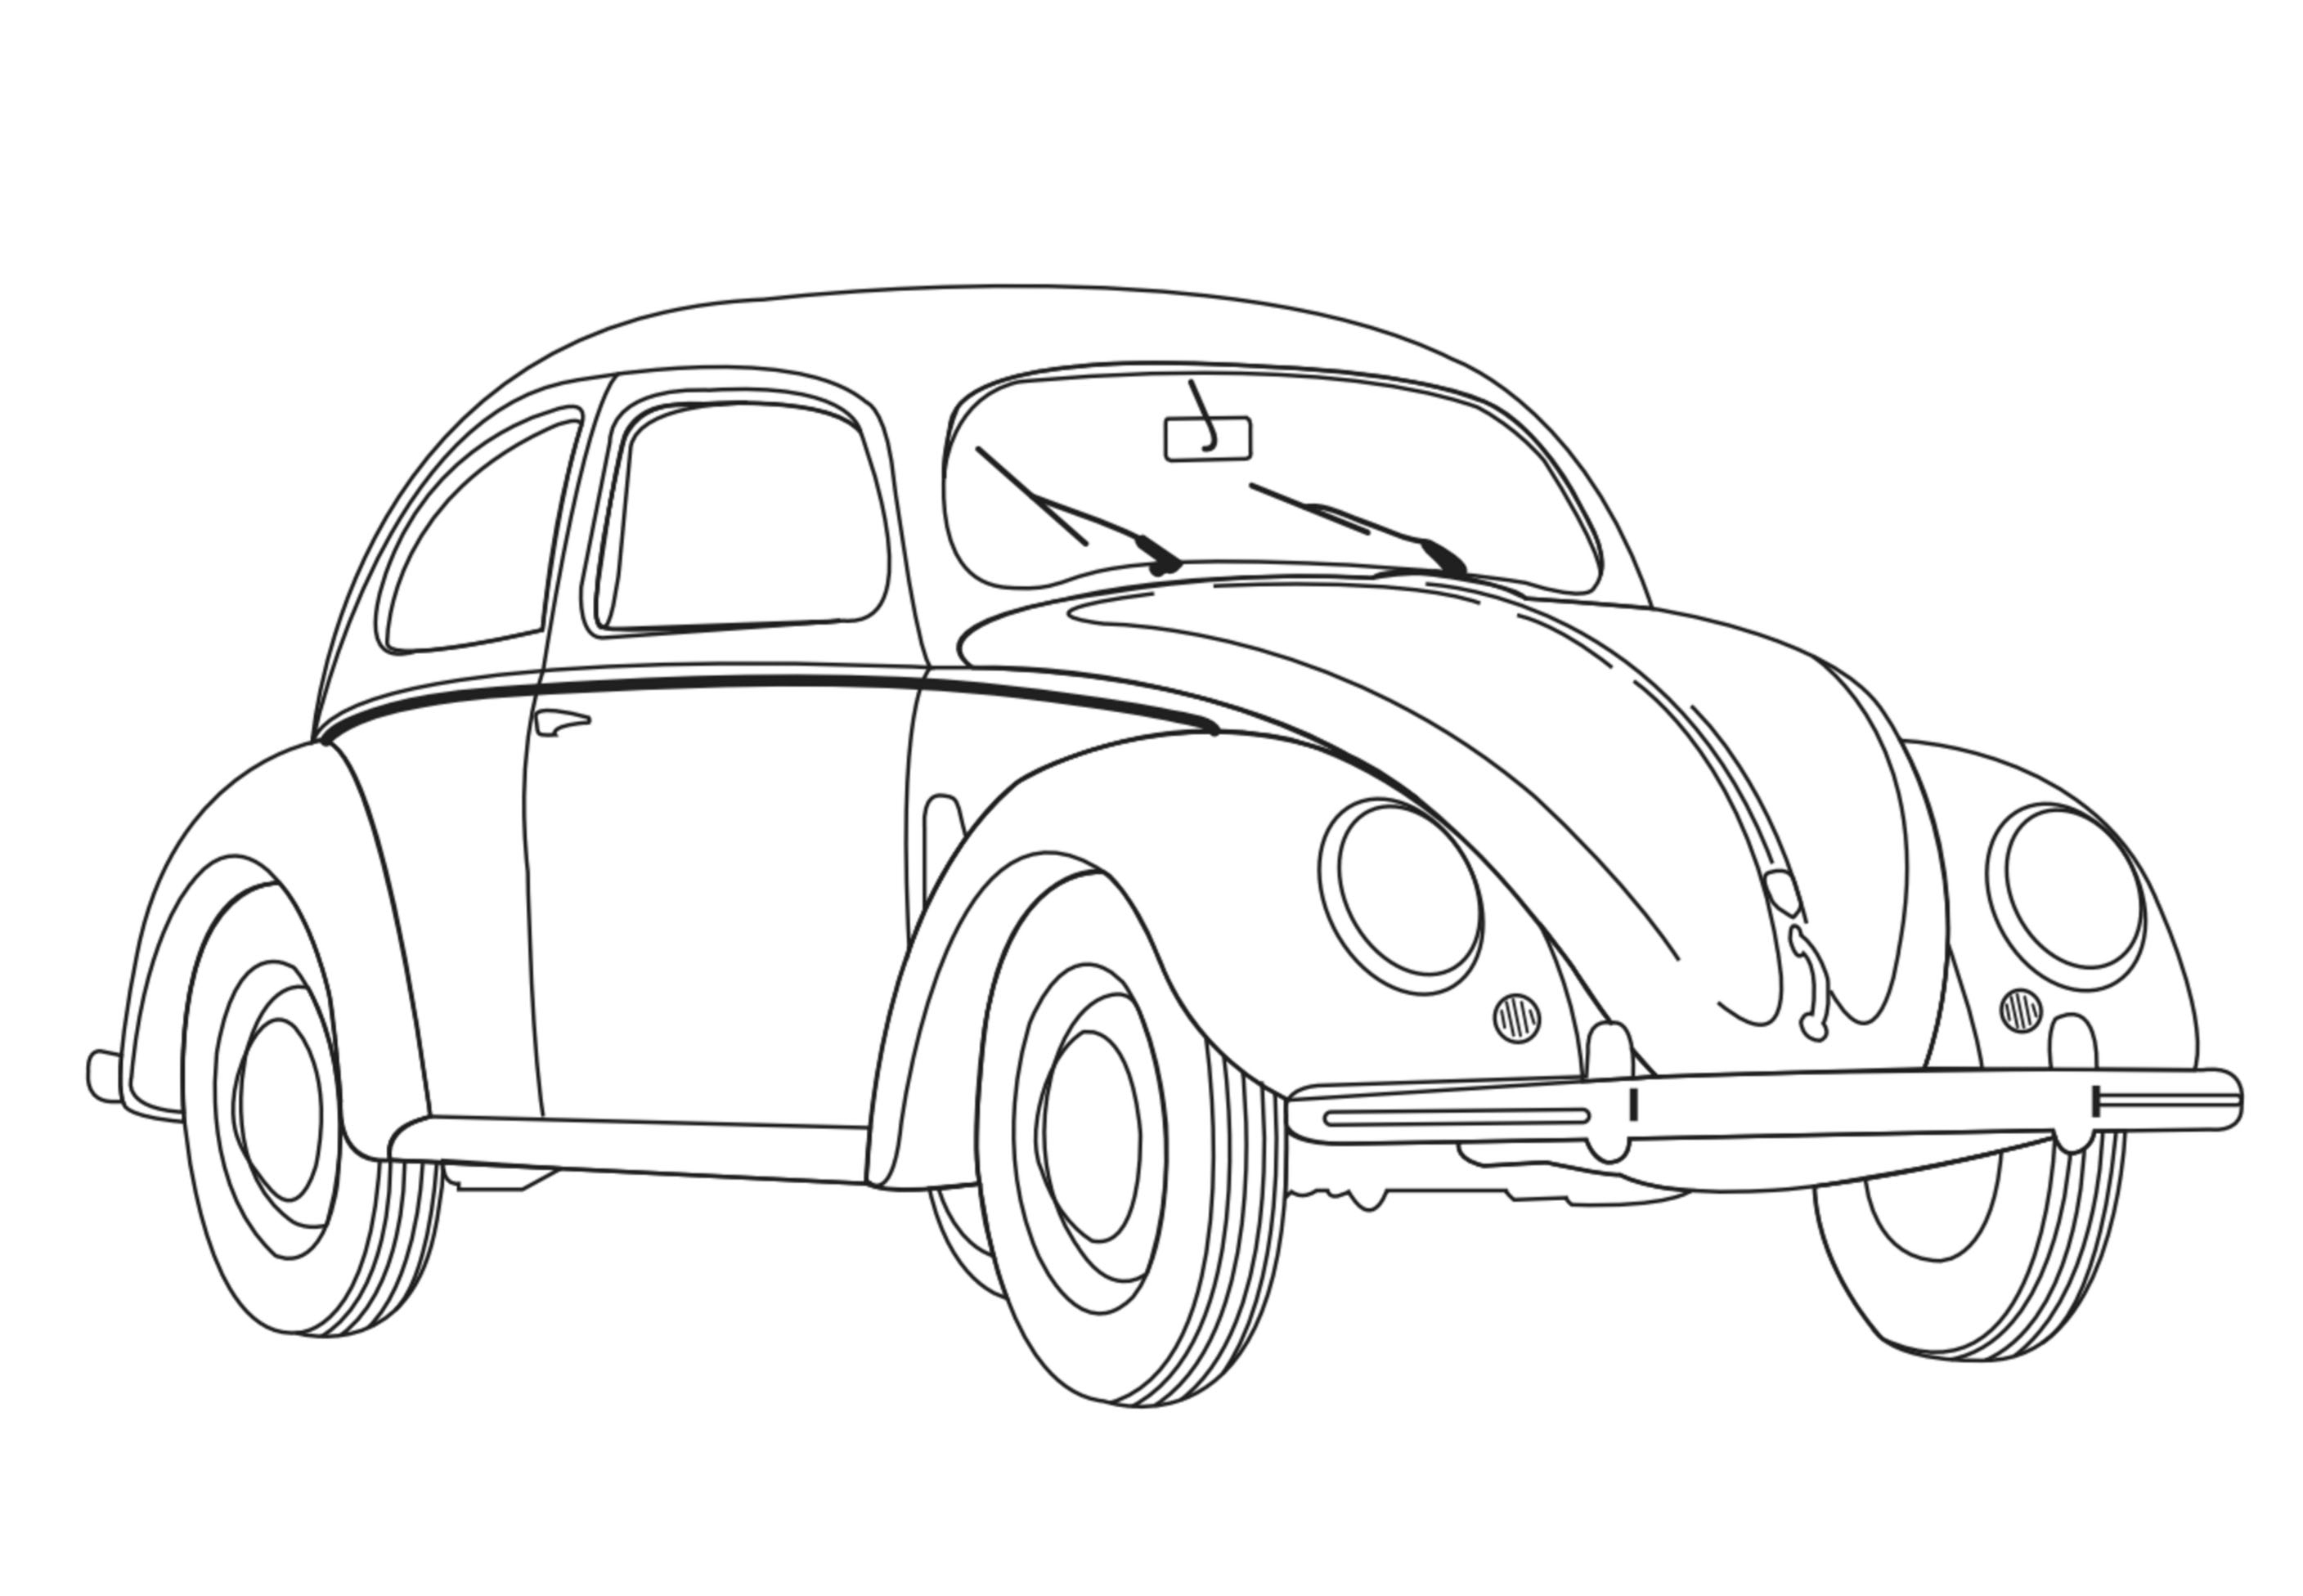 Car To Color For Kids - Car Kids Coloring Pages destiné Dessin À Colorier Cars